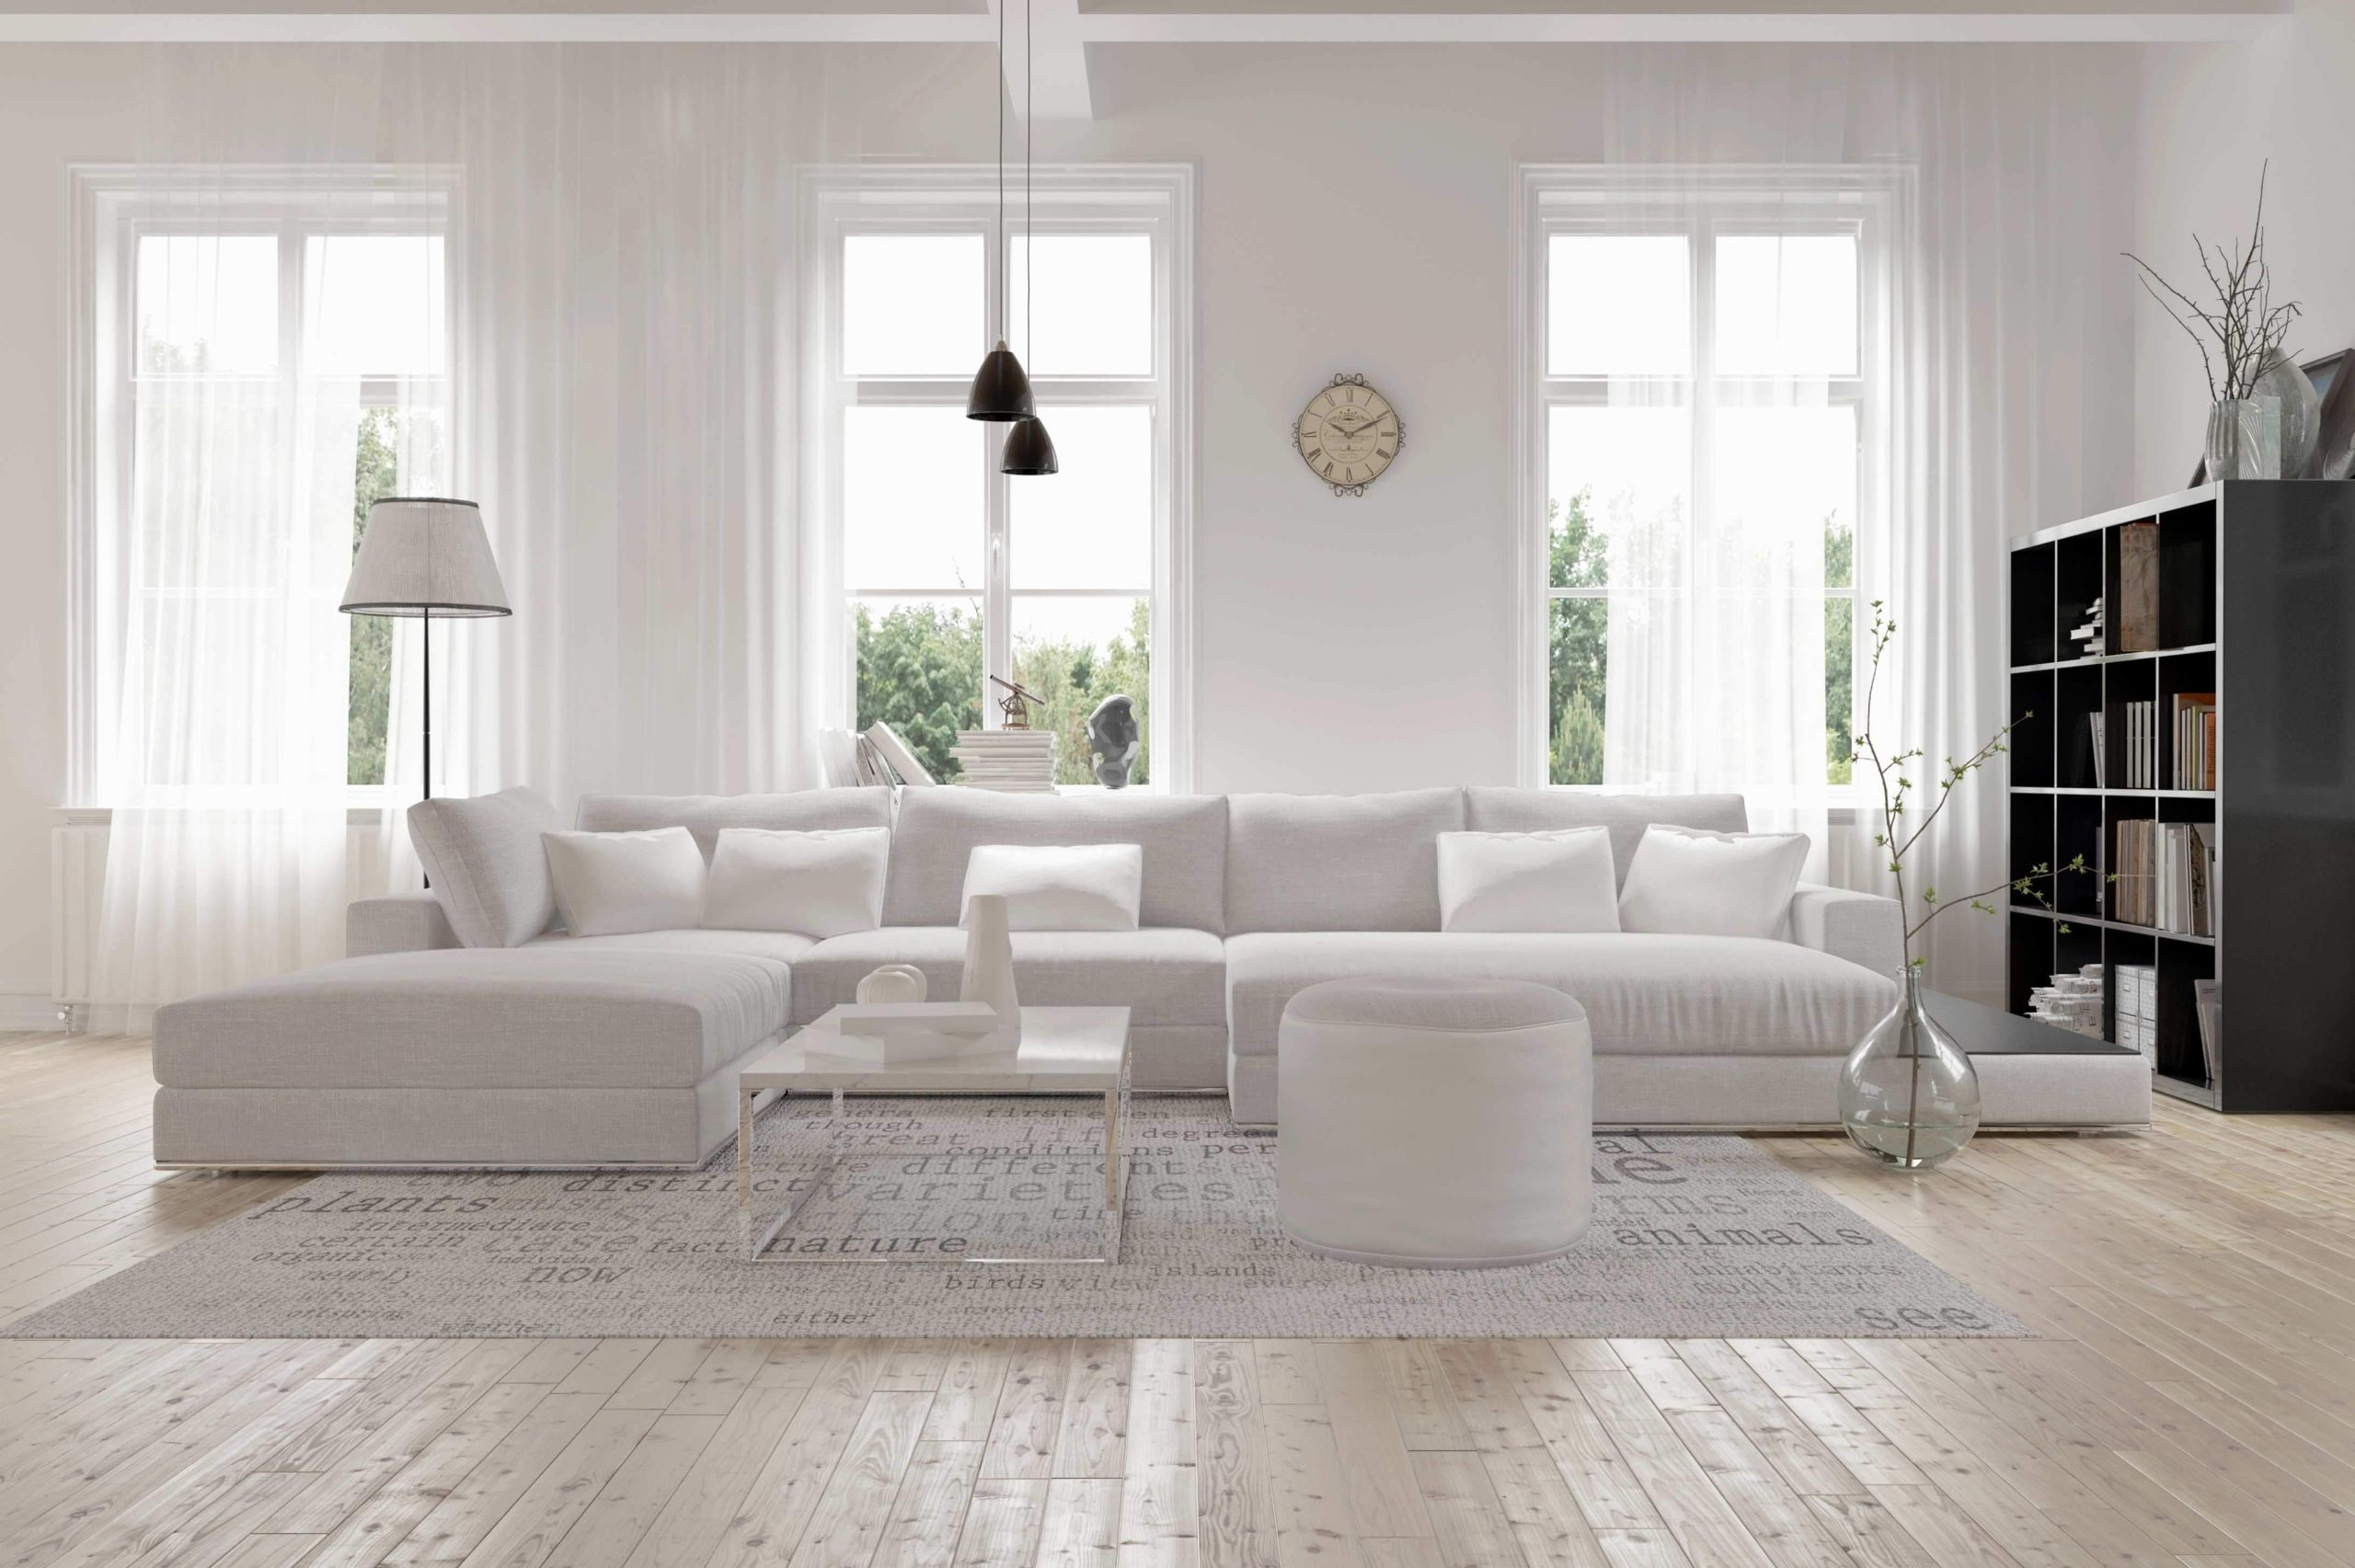 sofa grau weis beste sofa beautiful landhaus sofa weis full hd ideen von wohnzimmer landhausstil weis of wohnzimmer landhausstil weis